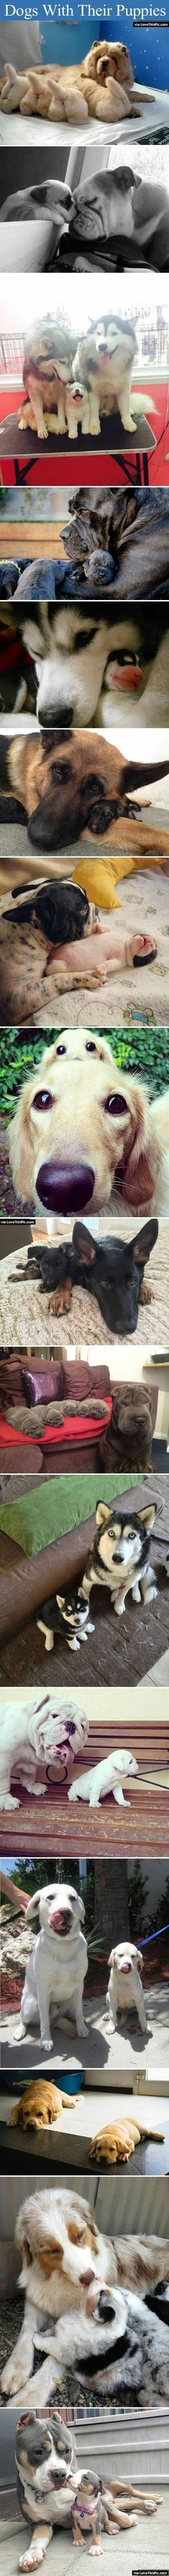 Dogs With Their Puppies cute animals cat cats adorable animal kittens pets kitten funny pictures funny animals funny cats | Visit http://gwyl.io/  for more diy/kids/pets videos